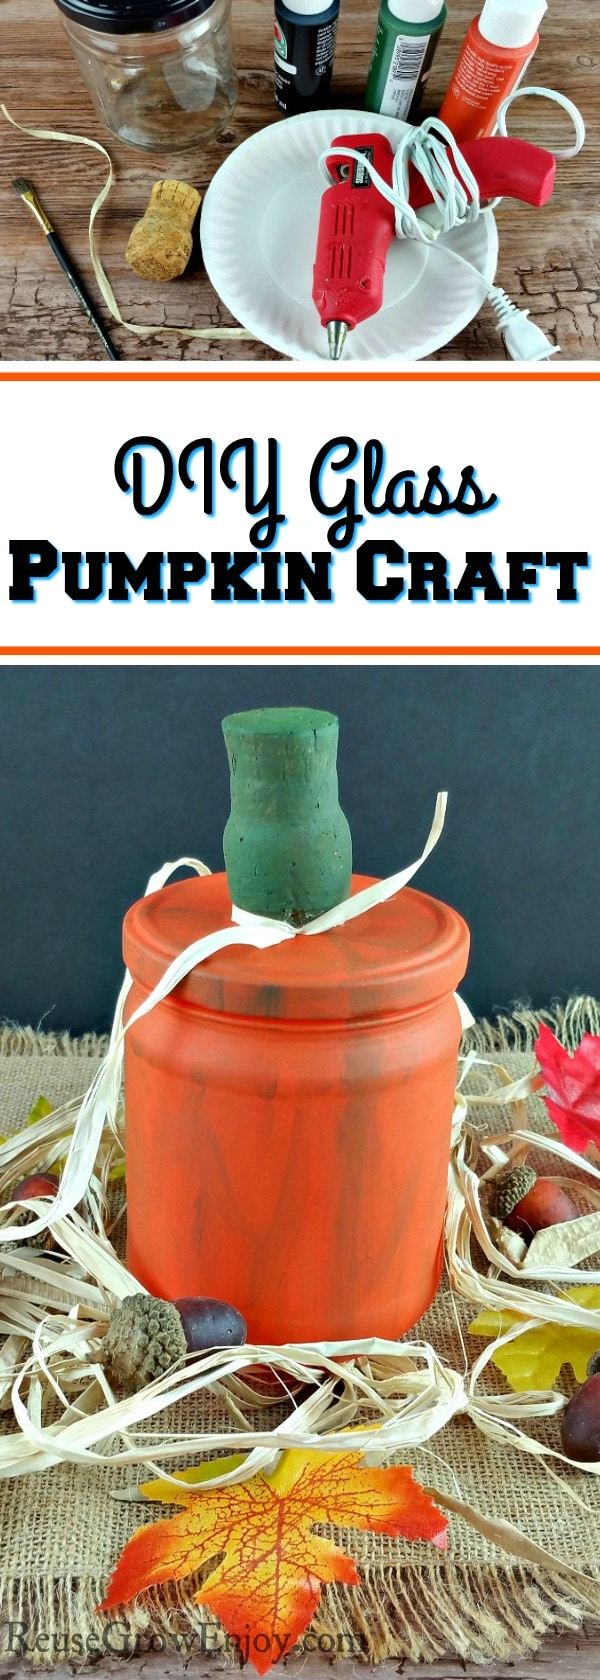 If you are looking for ways to add a touch of fall to the house without spending a lot, this pumpkin craft is for you. I am going to show you how to make a DIY glass pumpkin craft made from upcycled supplies.